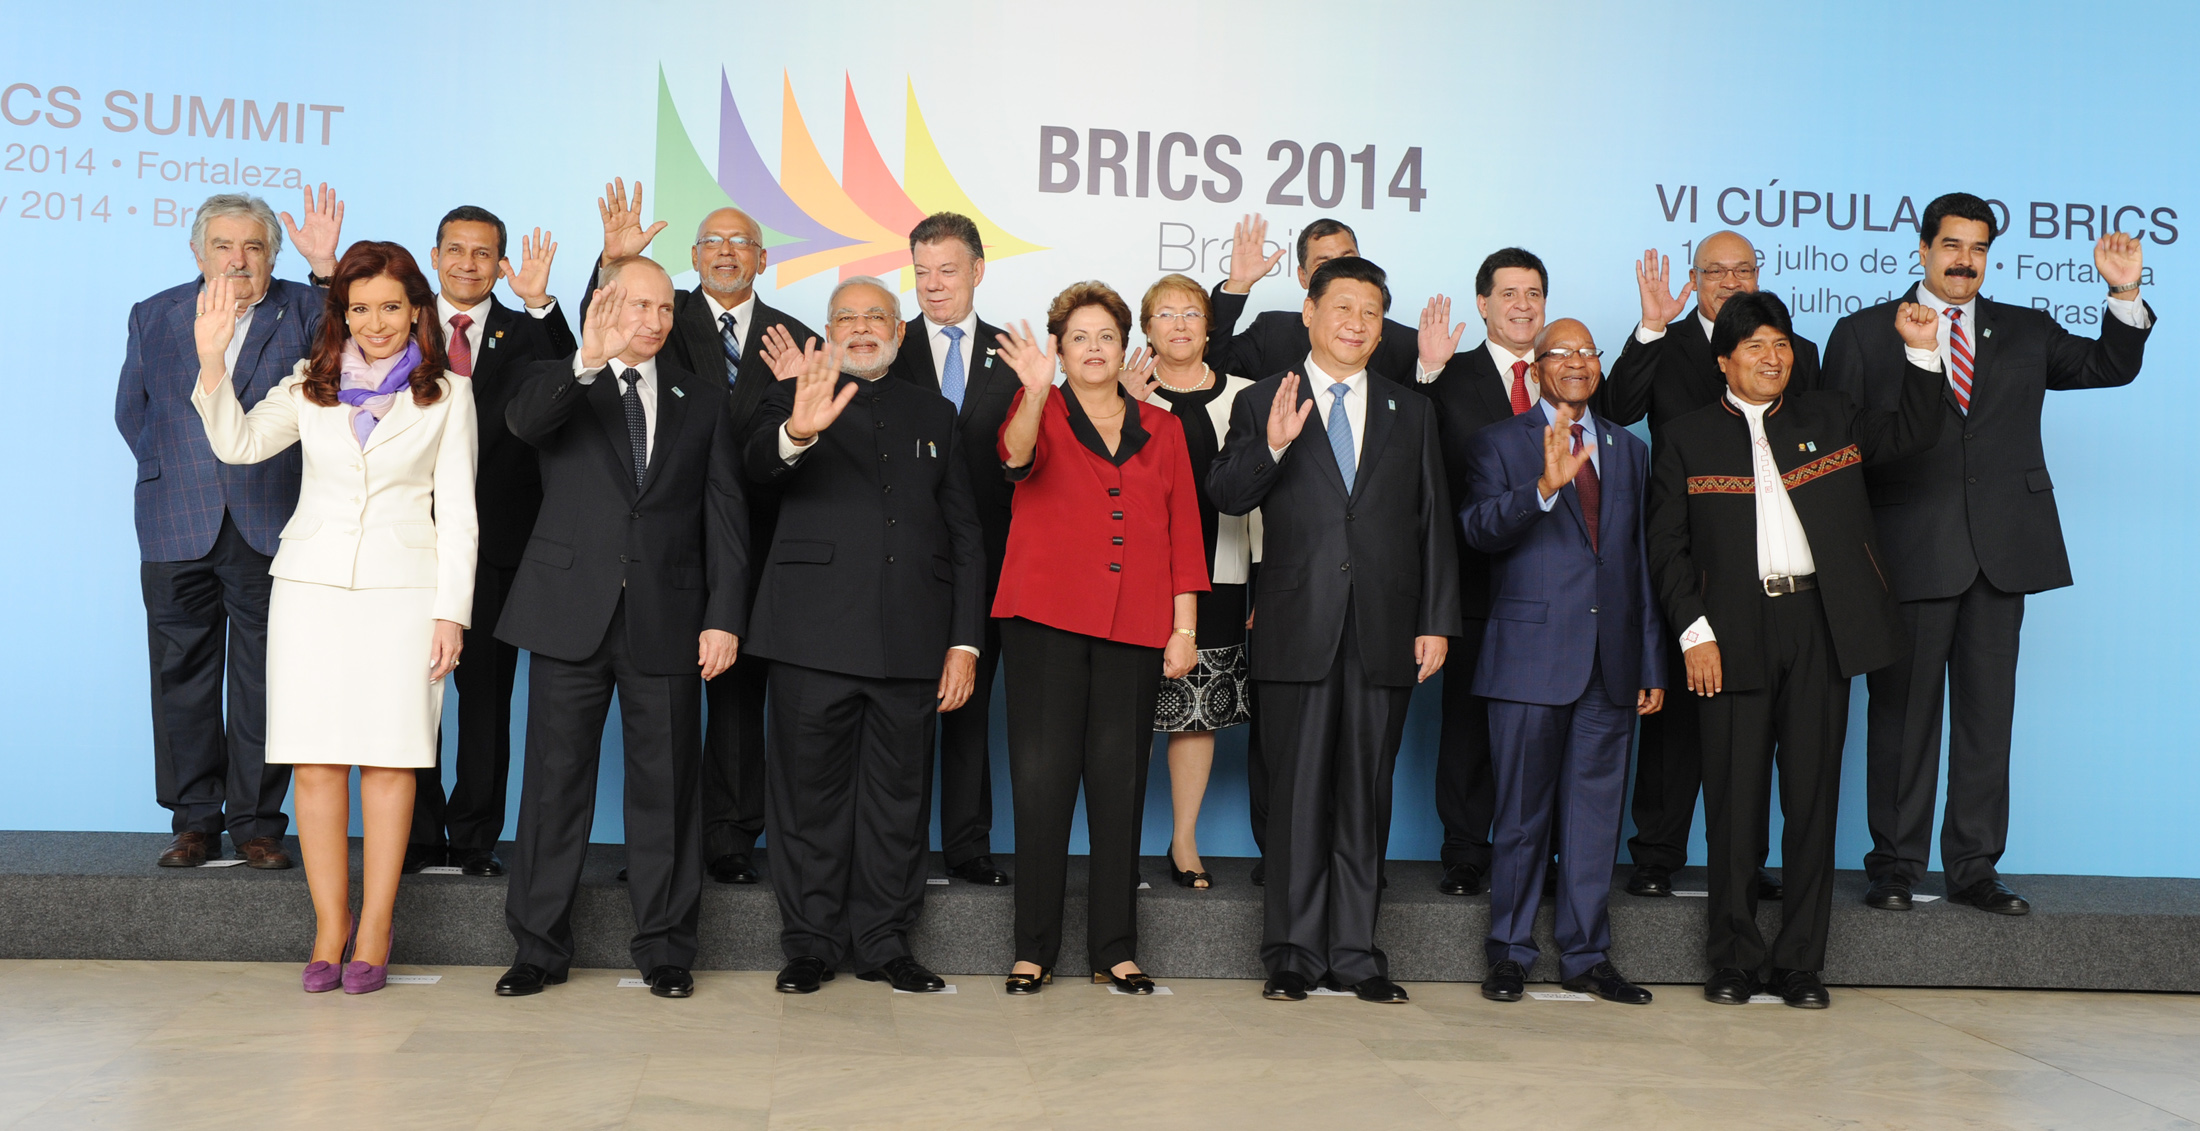 BRICS cover photo